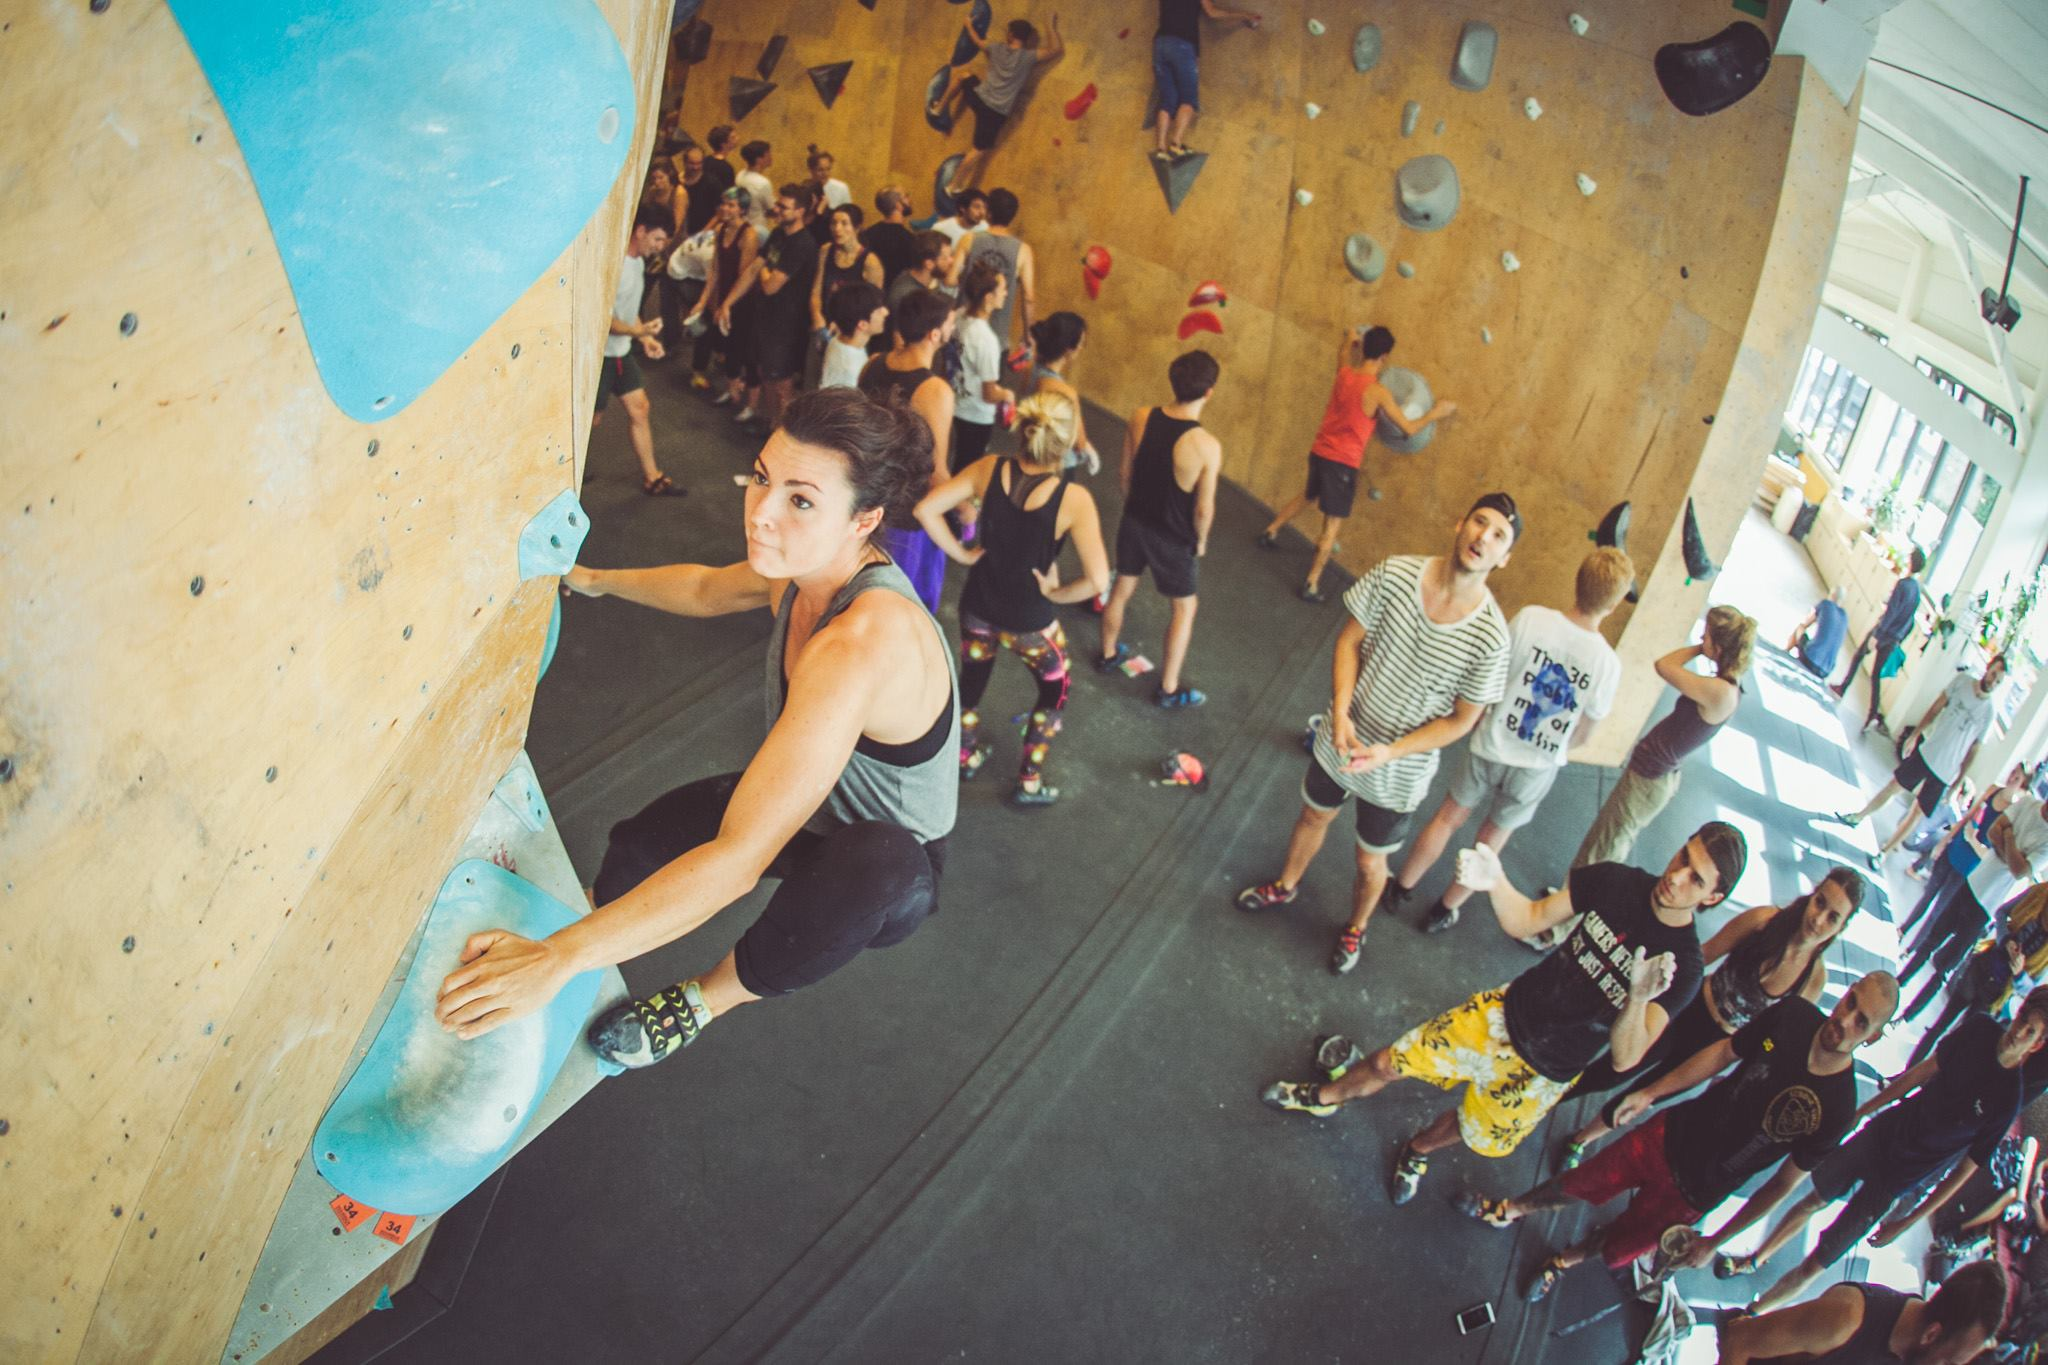 Girl climbing up a wall at Berlin Boulderklub while other people are watching